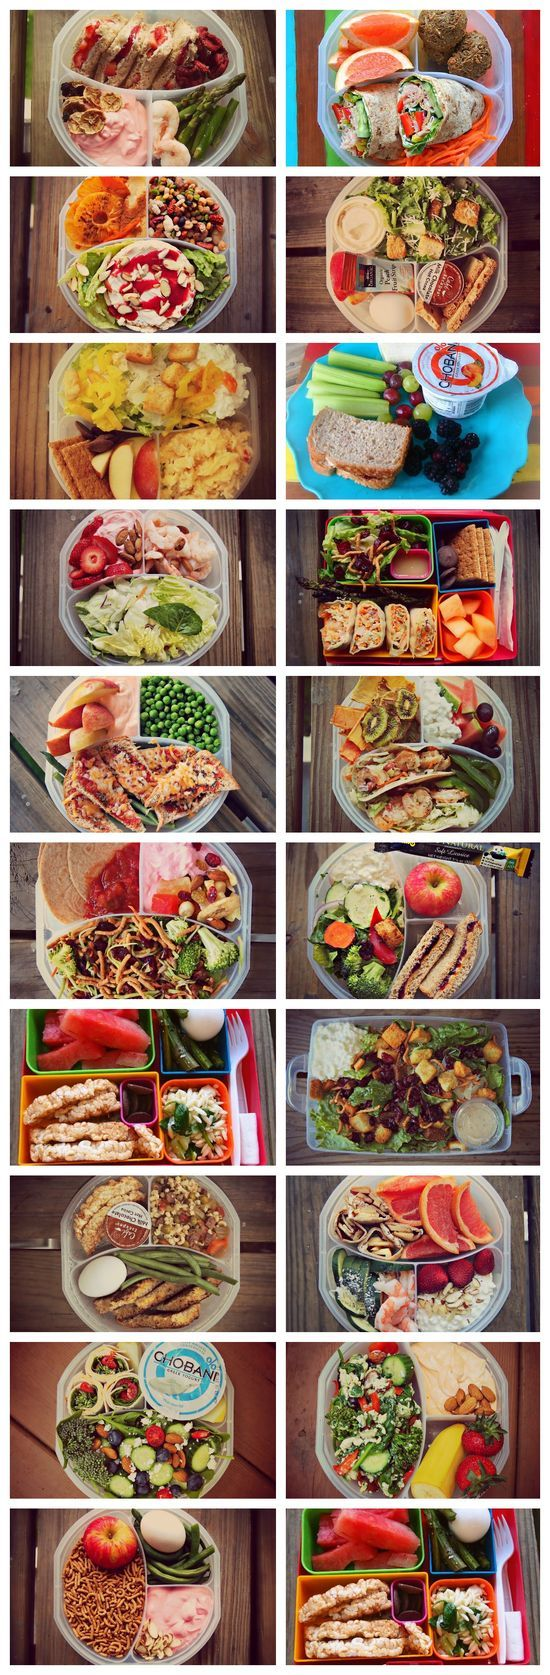 Healthy Lunch Ideas. This blogger posts a picture of her lunch every day - tons of super healthy, balanced, and colorful | http://better-health-naturally-843.blogspot.com